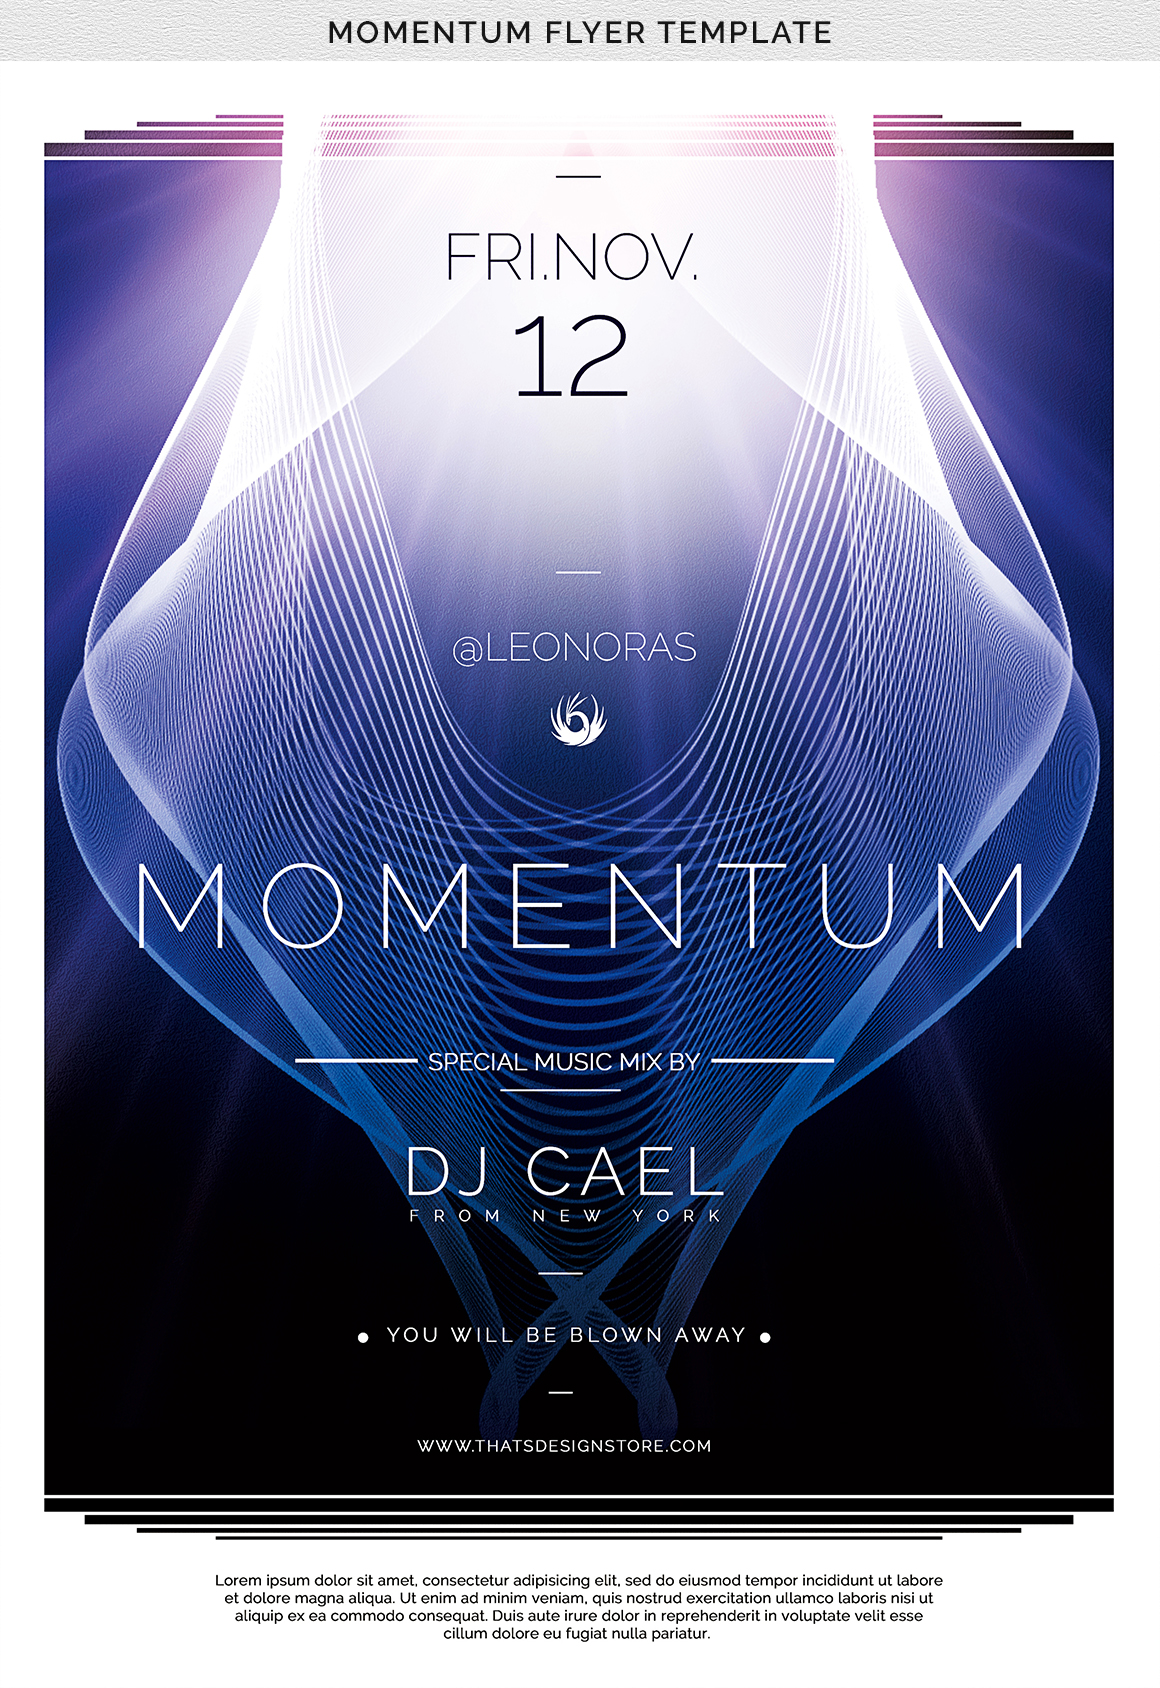 Momentum Flyer Template example image 7